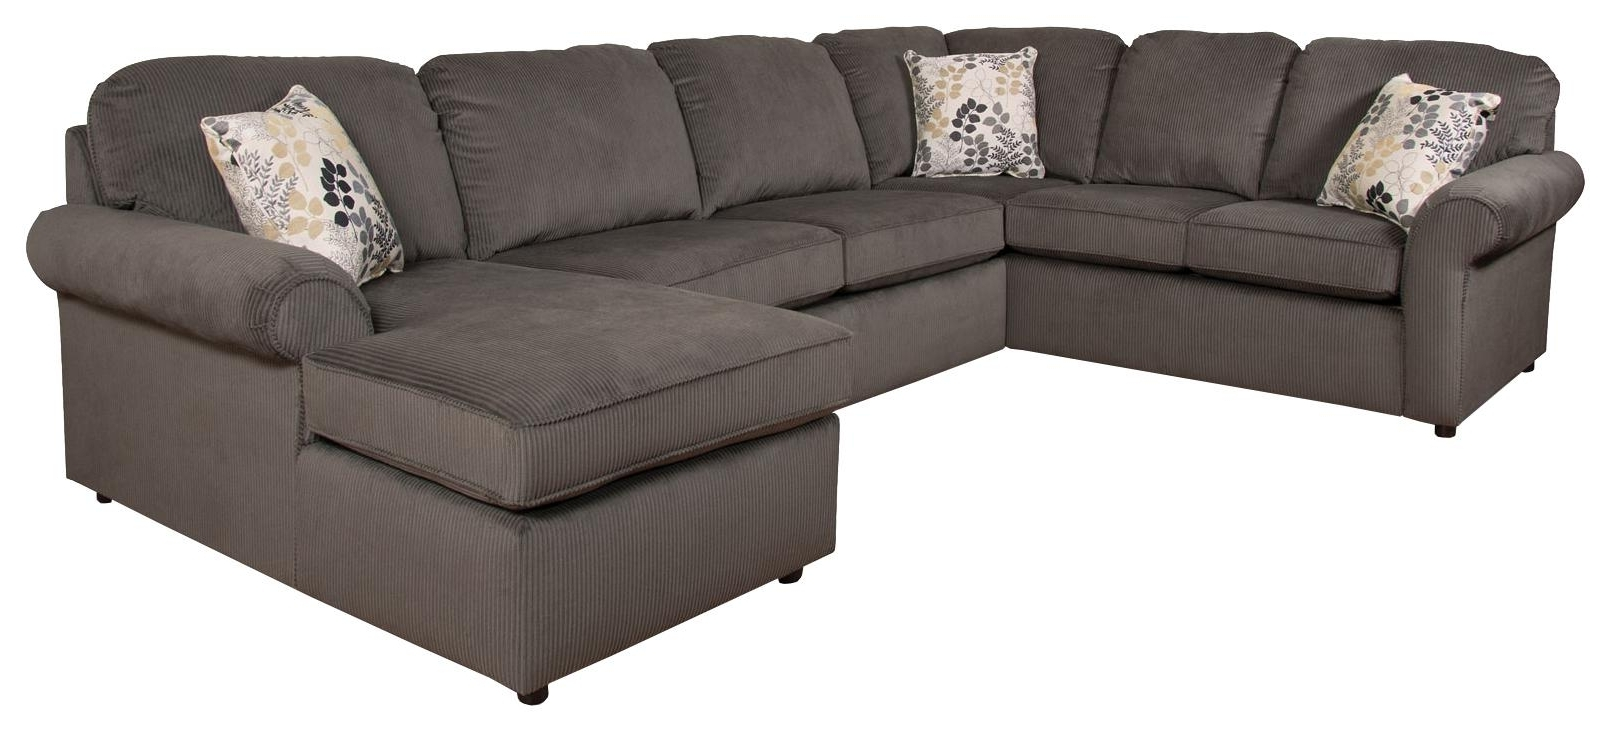 England Sectional Sofas With Regard To Latest England Malibu 5 6 Seat (Right Side) Chaise Sectional Sofa (View 10 of 20)